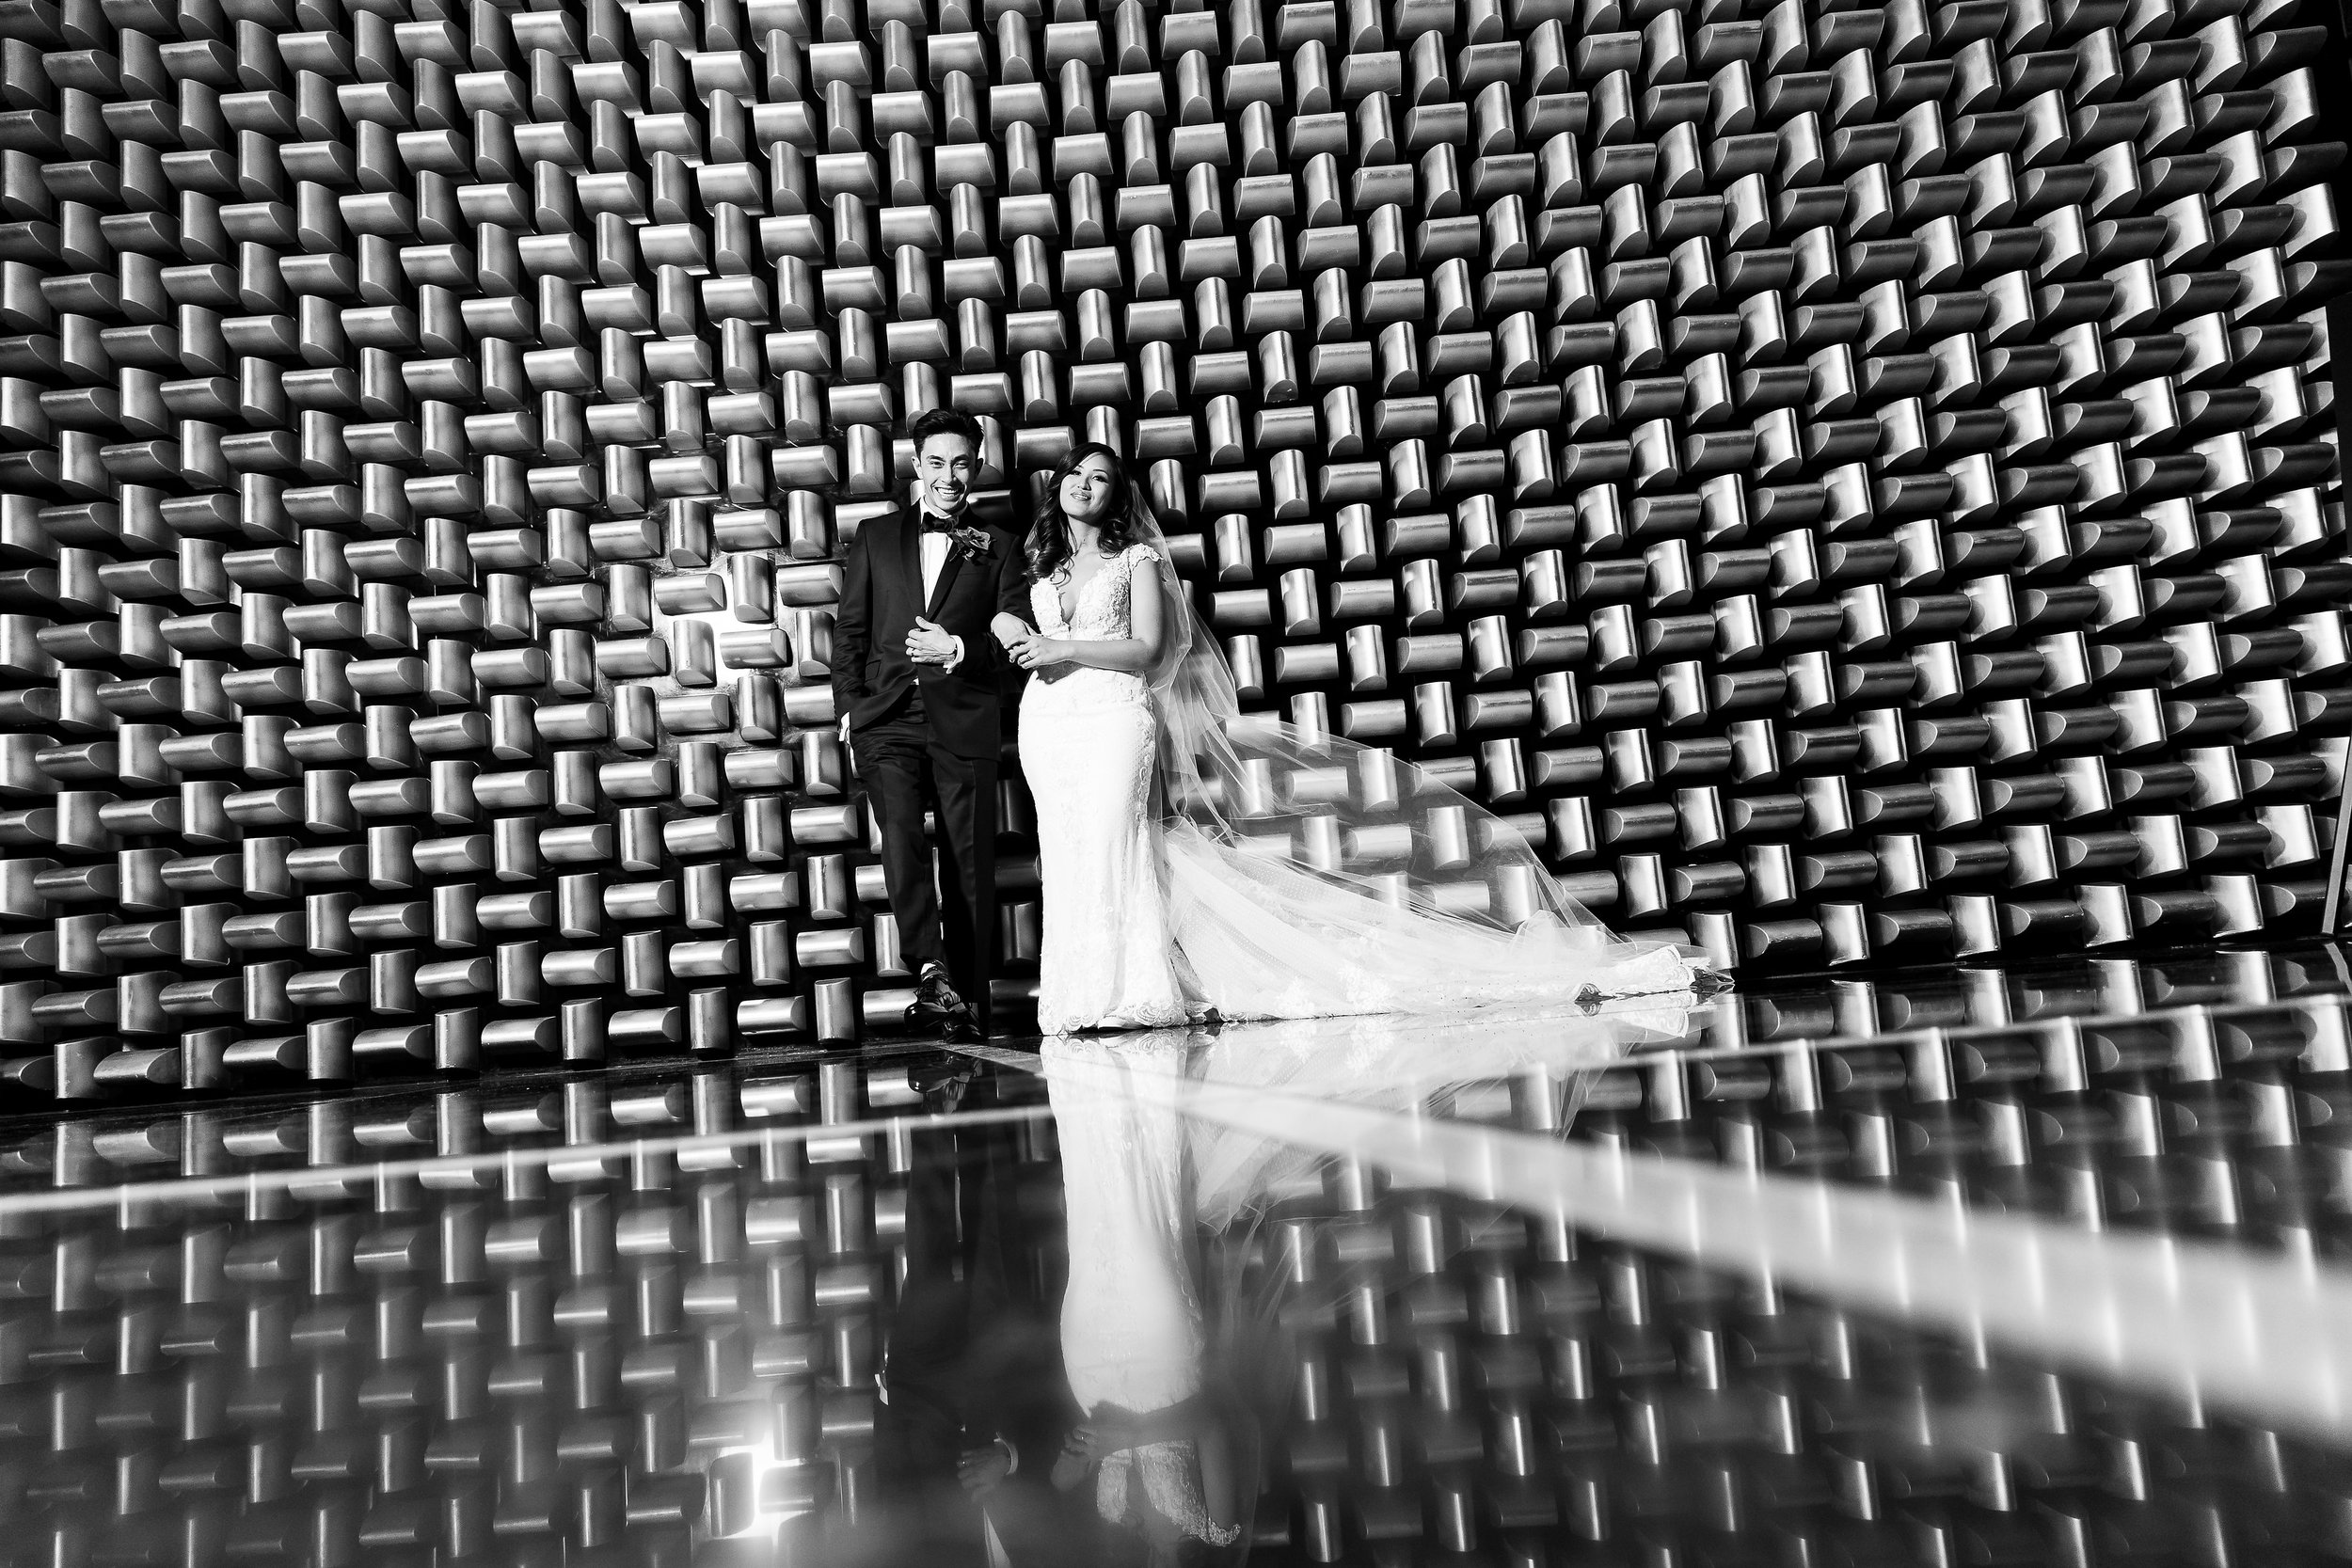 Black and white wedding portraits at the gold wall.Wedding Planner: Andrea Eppolito Events    Photography  Brian Leahy    Videography  HOO Films    Venue & Catering:  Mandarin Oriental  / Waldorf Astoria   Floral & Decor: Destinations by Design    Lighting: LED Unplugged    Music:  DJ Breeze II    Hair & Make Up: Amelia C & Co    Invitations by  Bliss & Bone    Menu and Escort Cards by  Meldeen